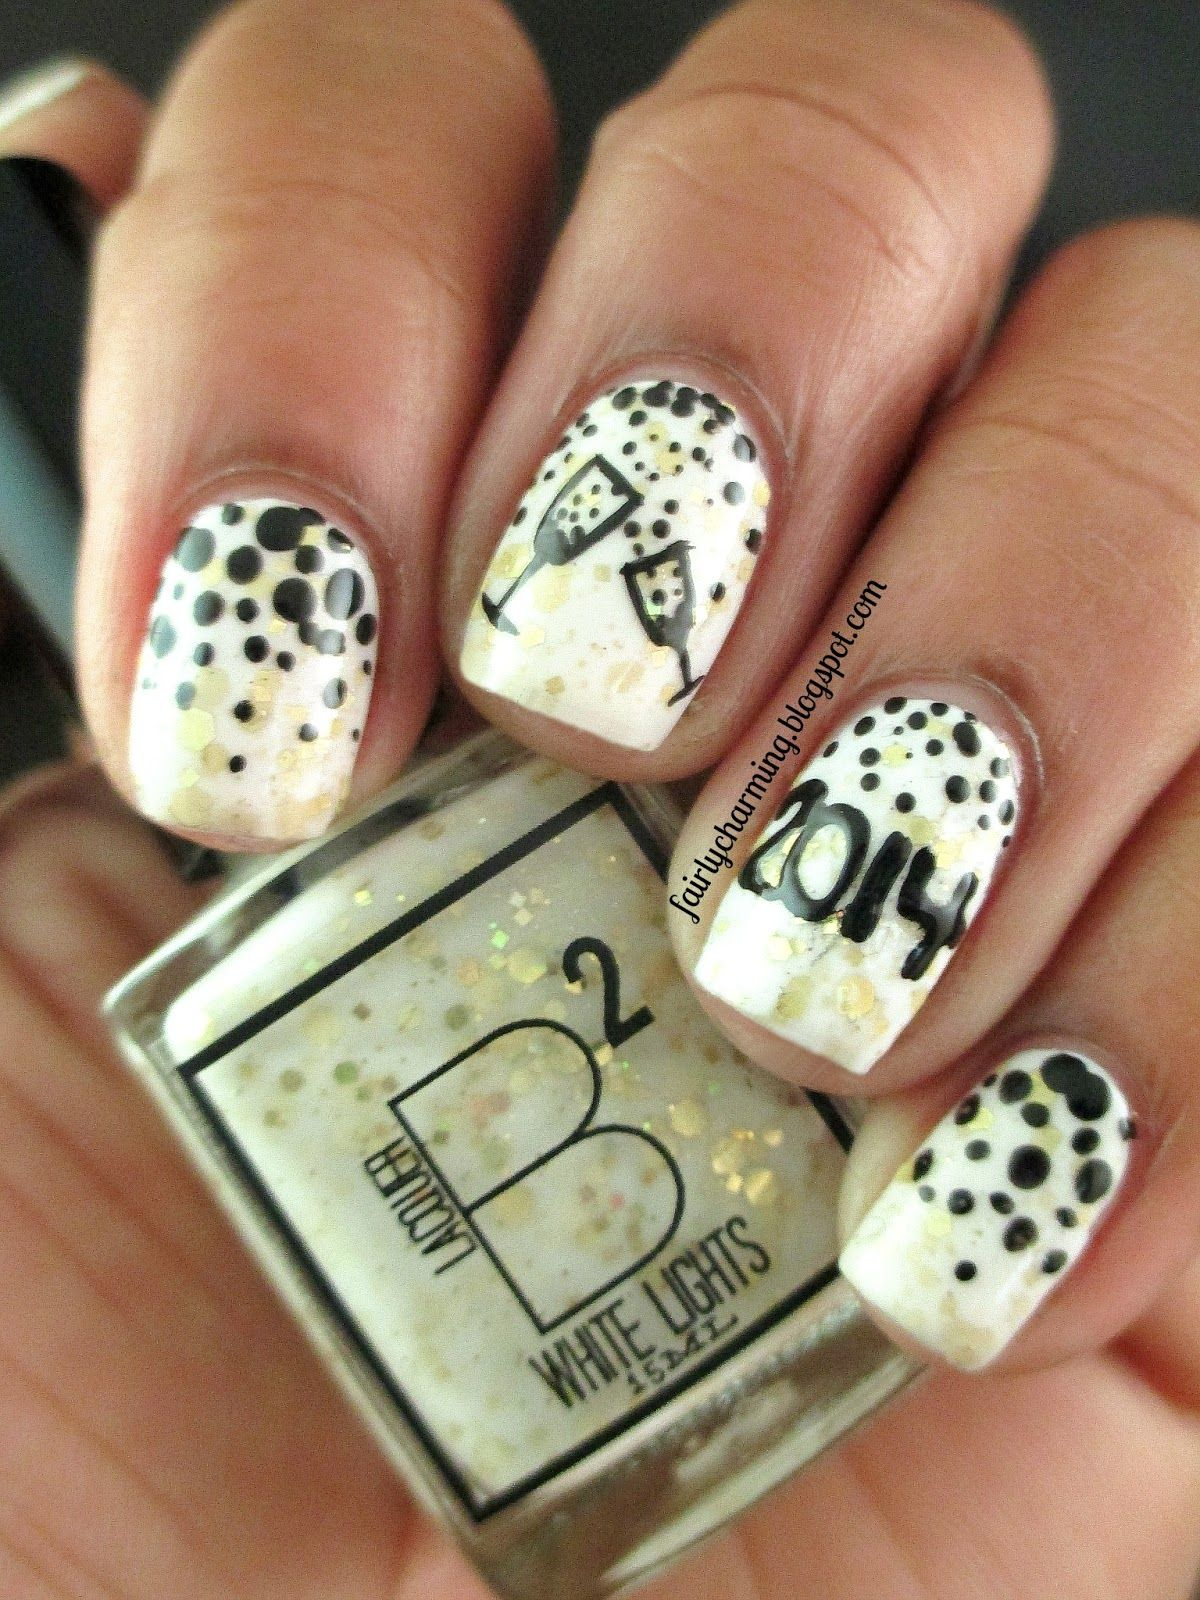 Idea to usher in a new year | Nails | Pinterest | Ushers, Hot nails ...